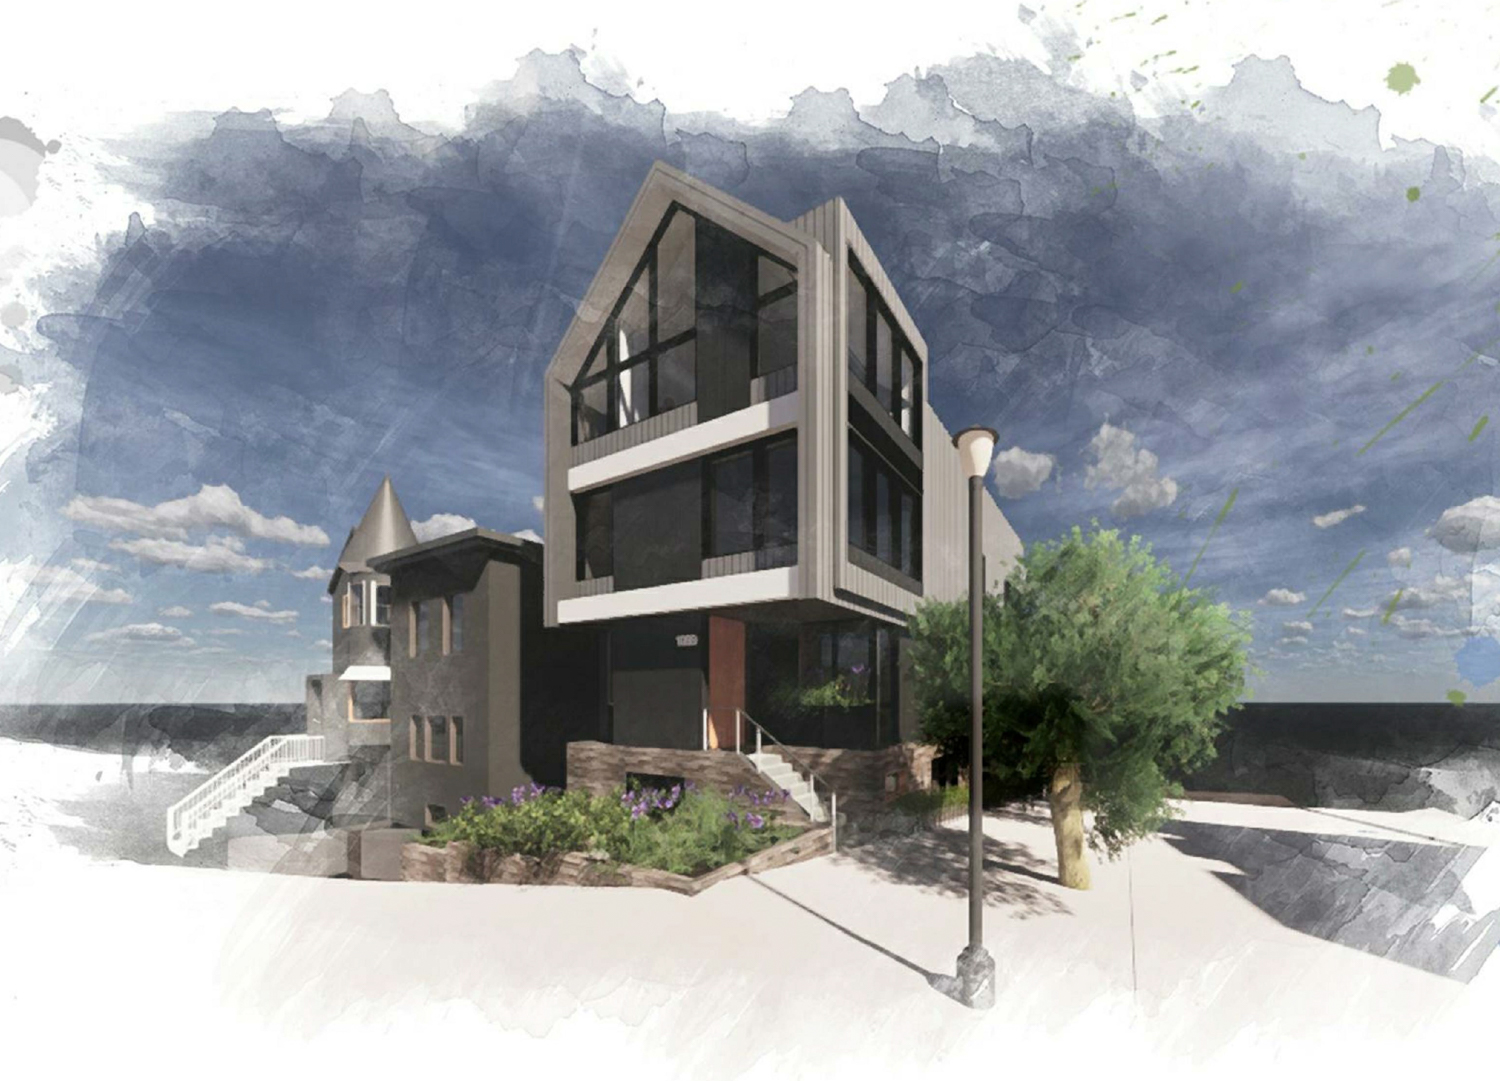 1099 Dolores Street, digital painting by Winder Gibson Architects